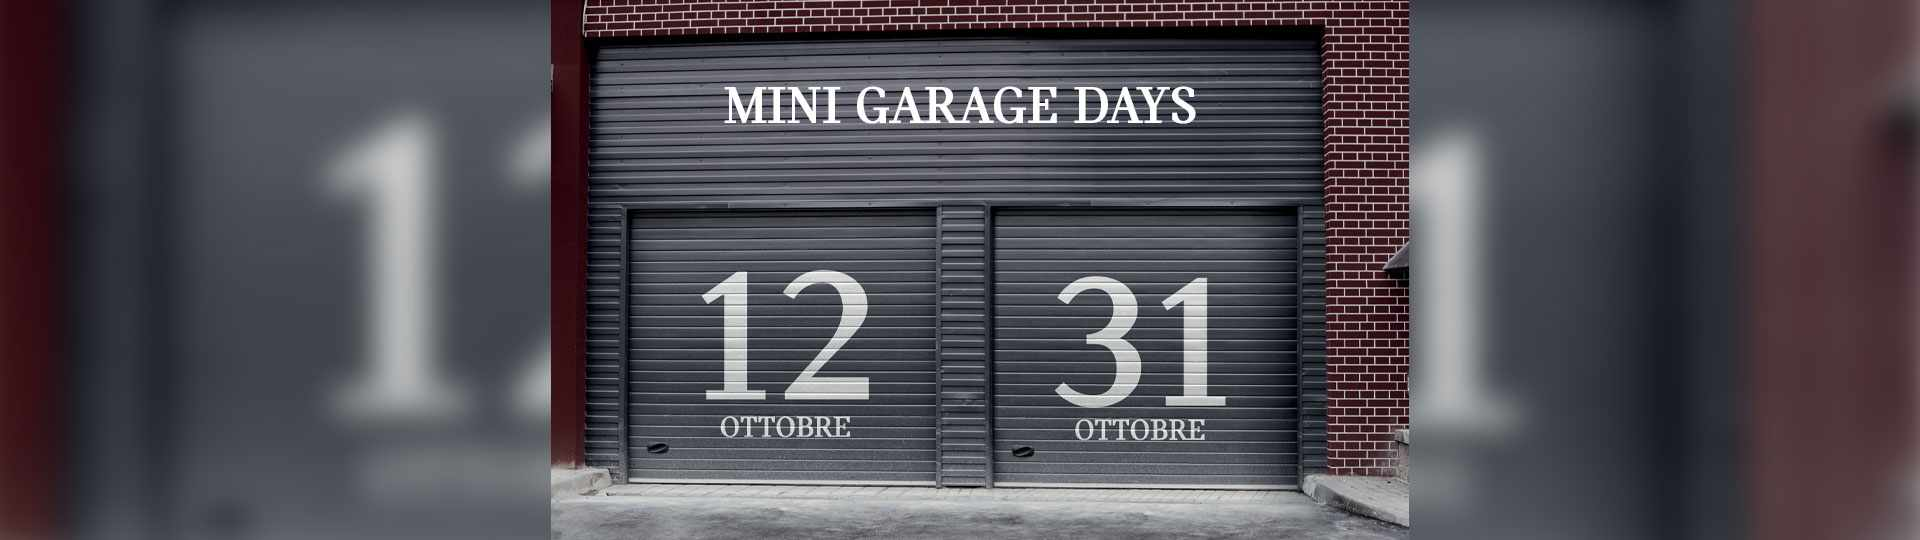 MINI-Garage-Days-min.jpg